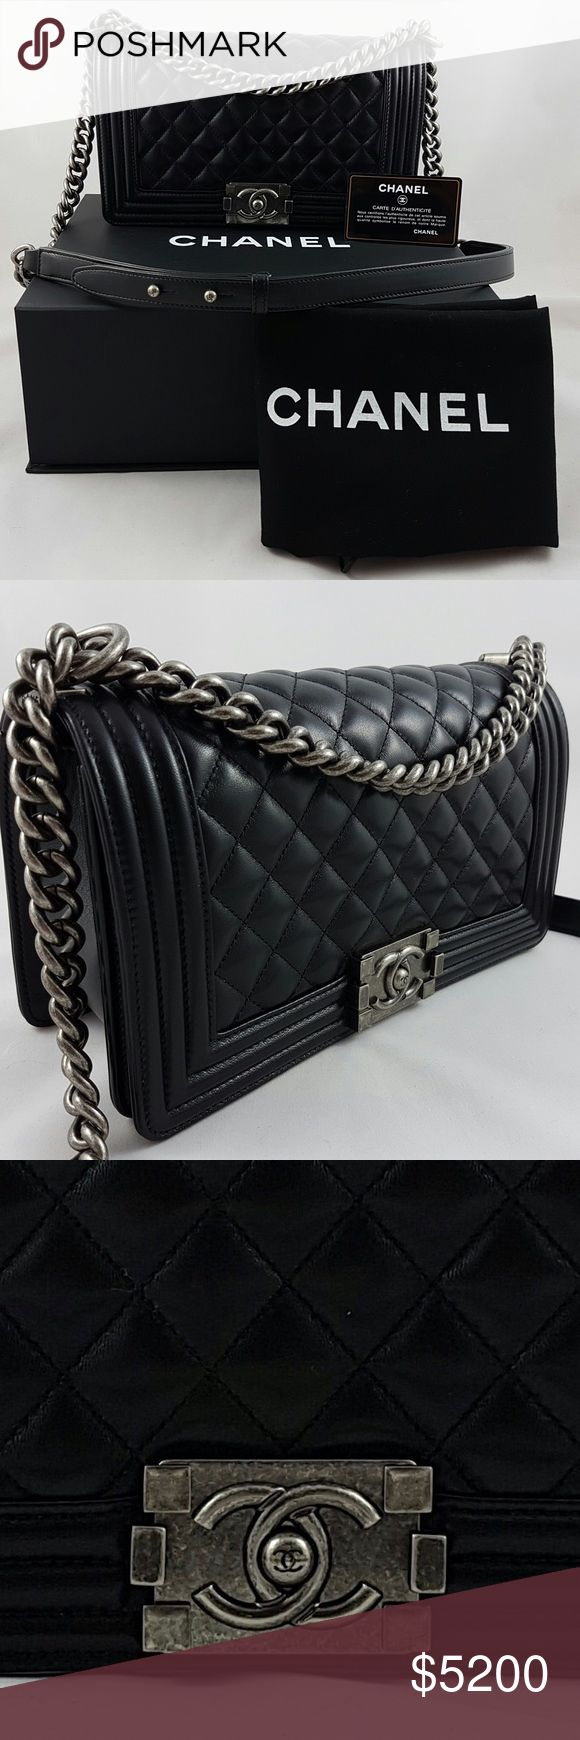 Chanel Boy Old Medium Lambskin Ruthenium 💯 AUTHENTIC  🎀 BRAND NEW ⛔️ NO TRADES  ⬇️ DISCOUNTED  ✈️ SHIPS QUICKLY   AUTHENTICITY AND QUALITY WILL BE VERIFIED BY POSHMARK CONCIERGE PRIOR TO BUYER RECEIVING THEIR ORDER.   Prior to purchasing the bag, try it in person at your local boutique or department shop to make sure that you are happy with the size and overall look. If you ask for dimensions, it means you have no idea what you're buying. CHANEL Bags Crossbody Bags